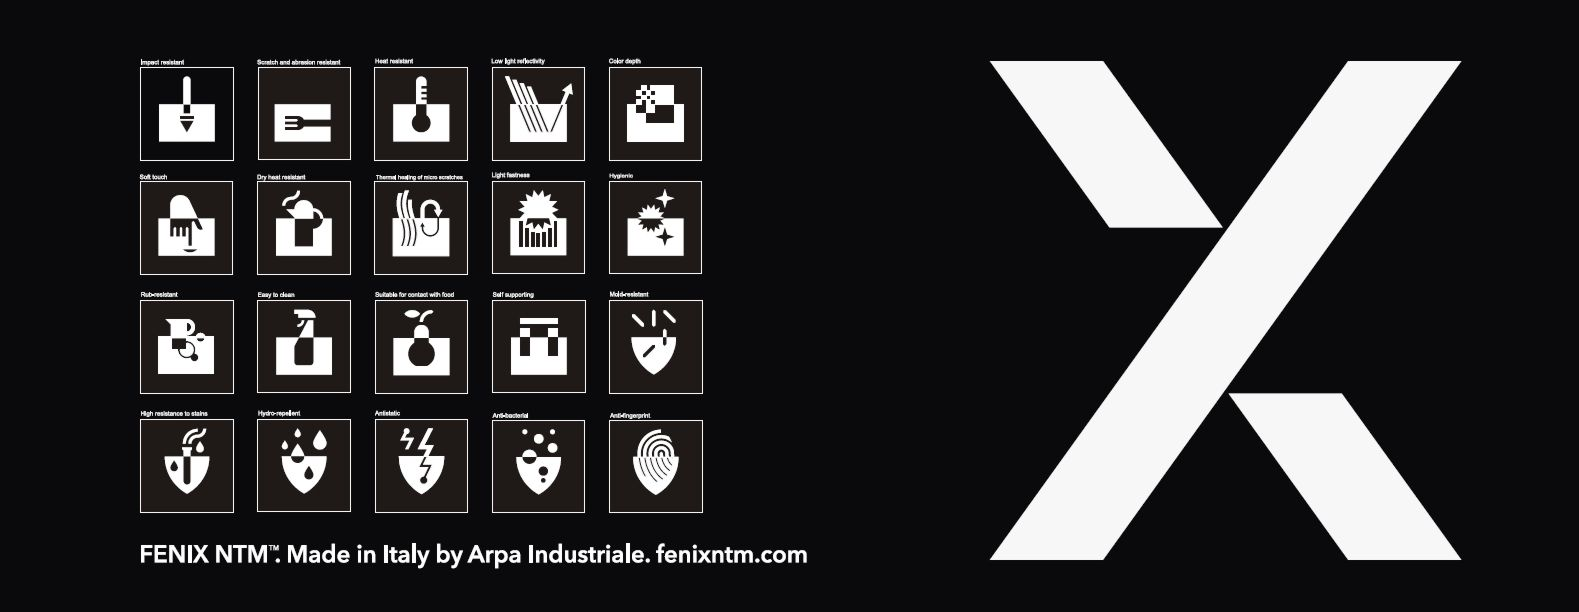 All the features of FENIX NTM at a glance.